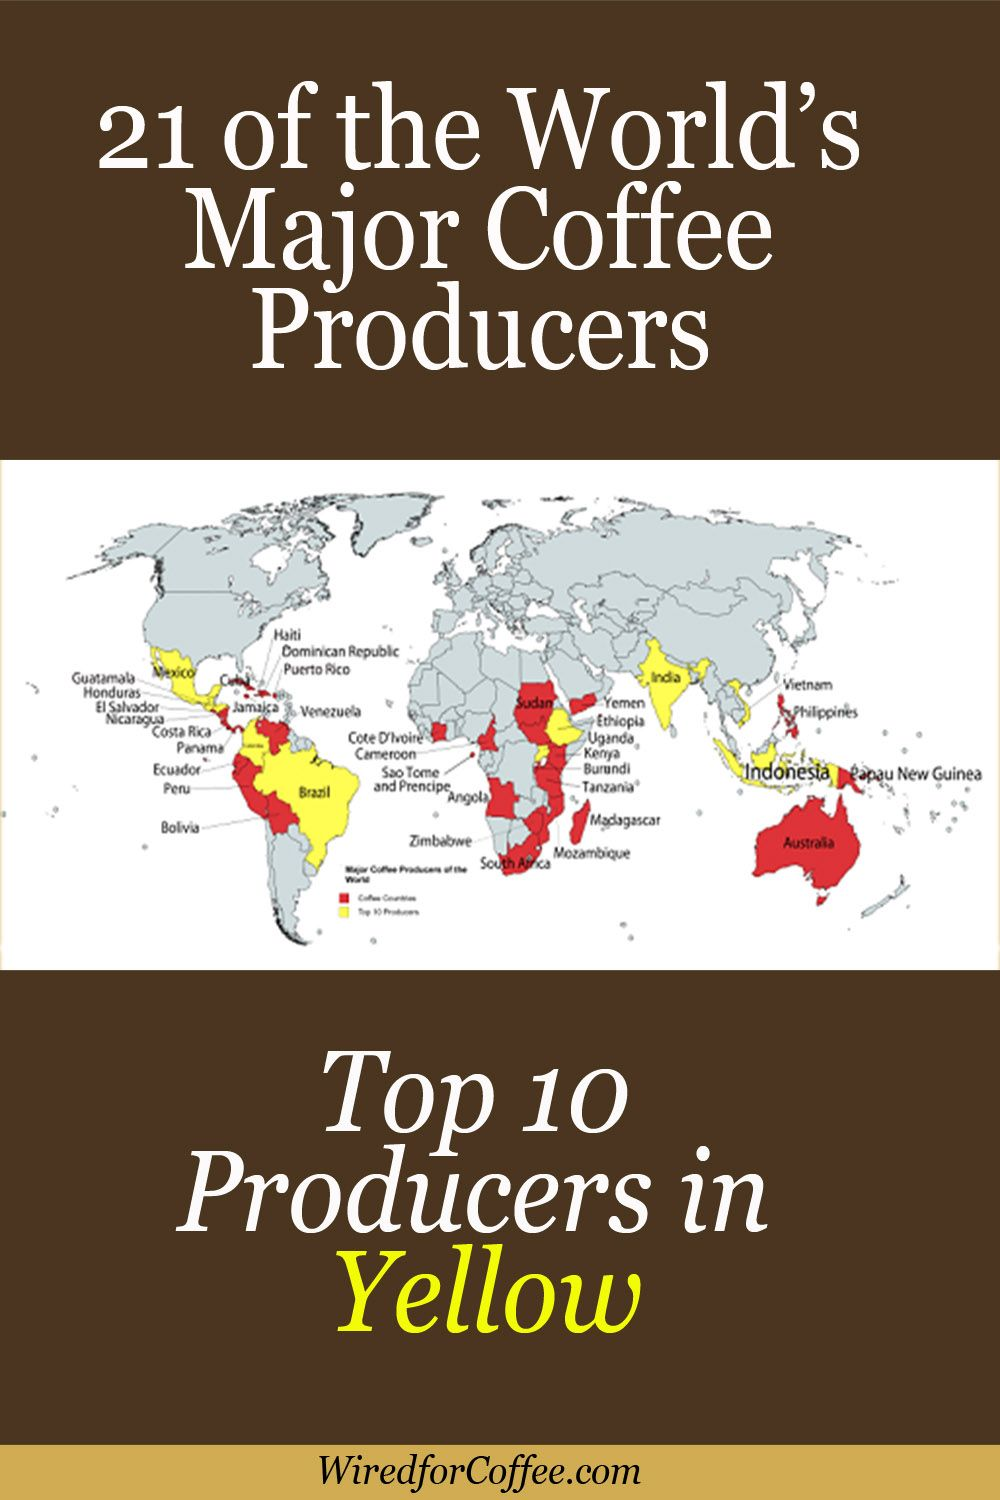 Where Does Coffee Come From? 21 Countries and the Top 10